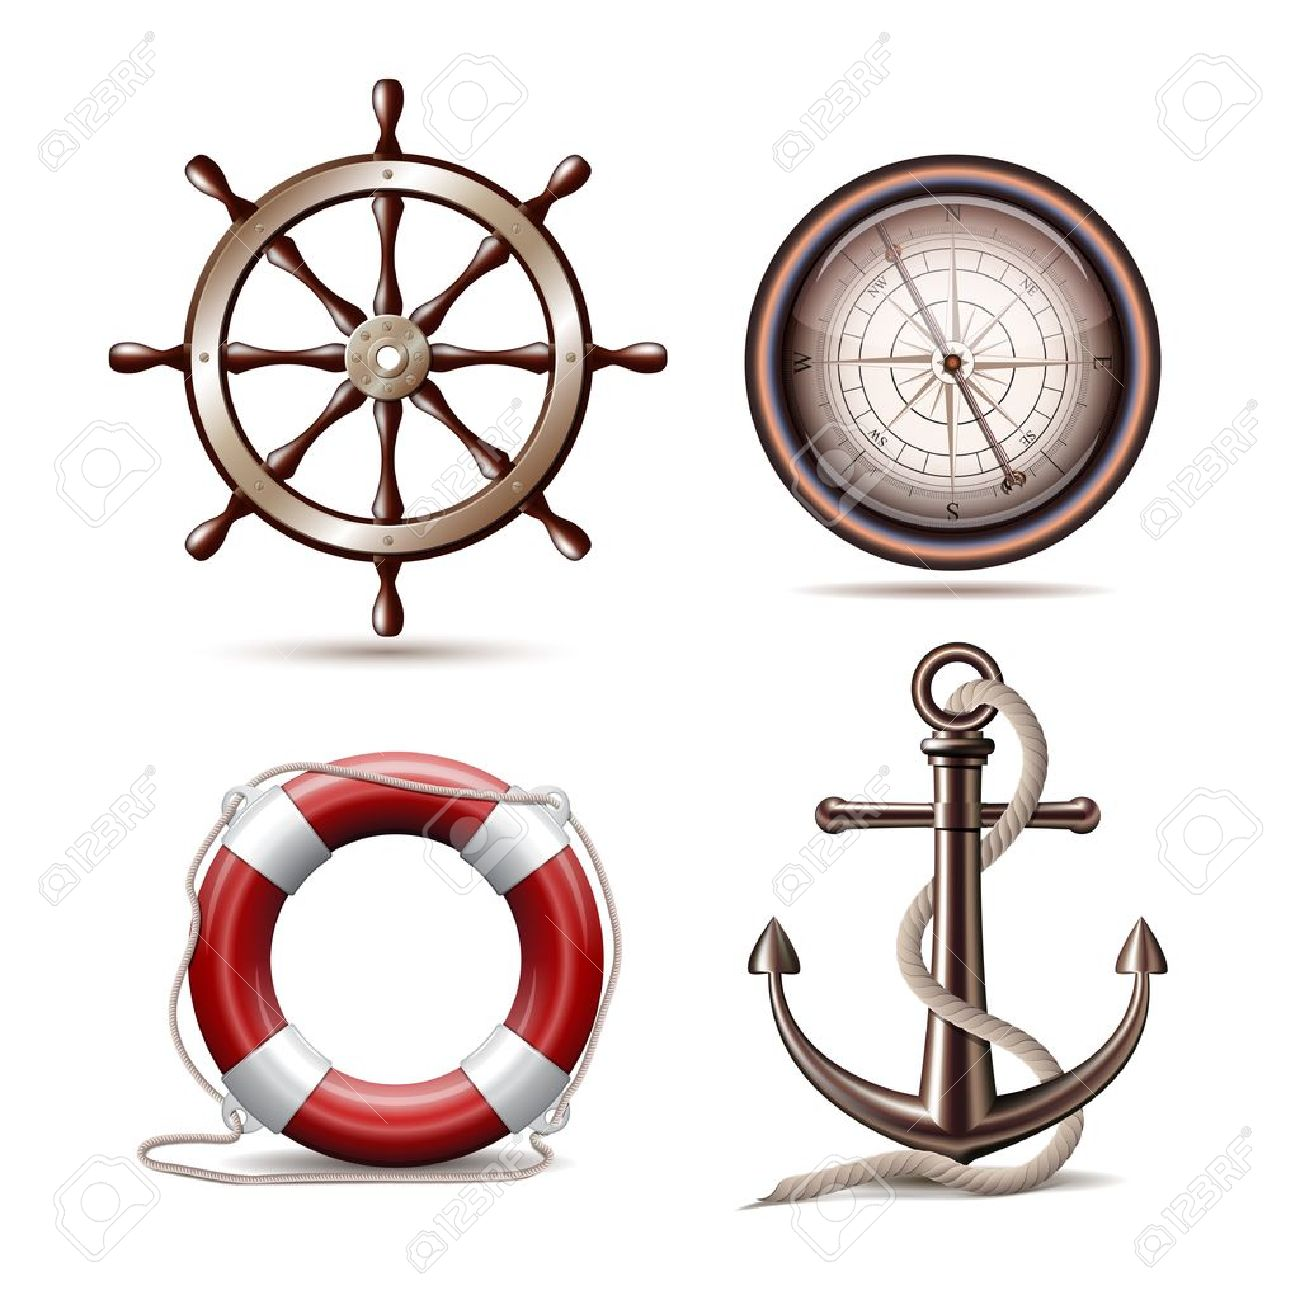 Set of marine symbols on white background Illustration Stock Vector - 20276292